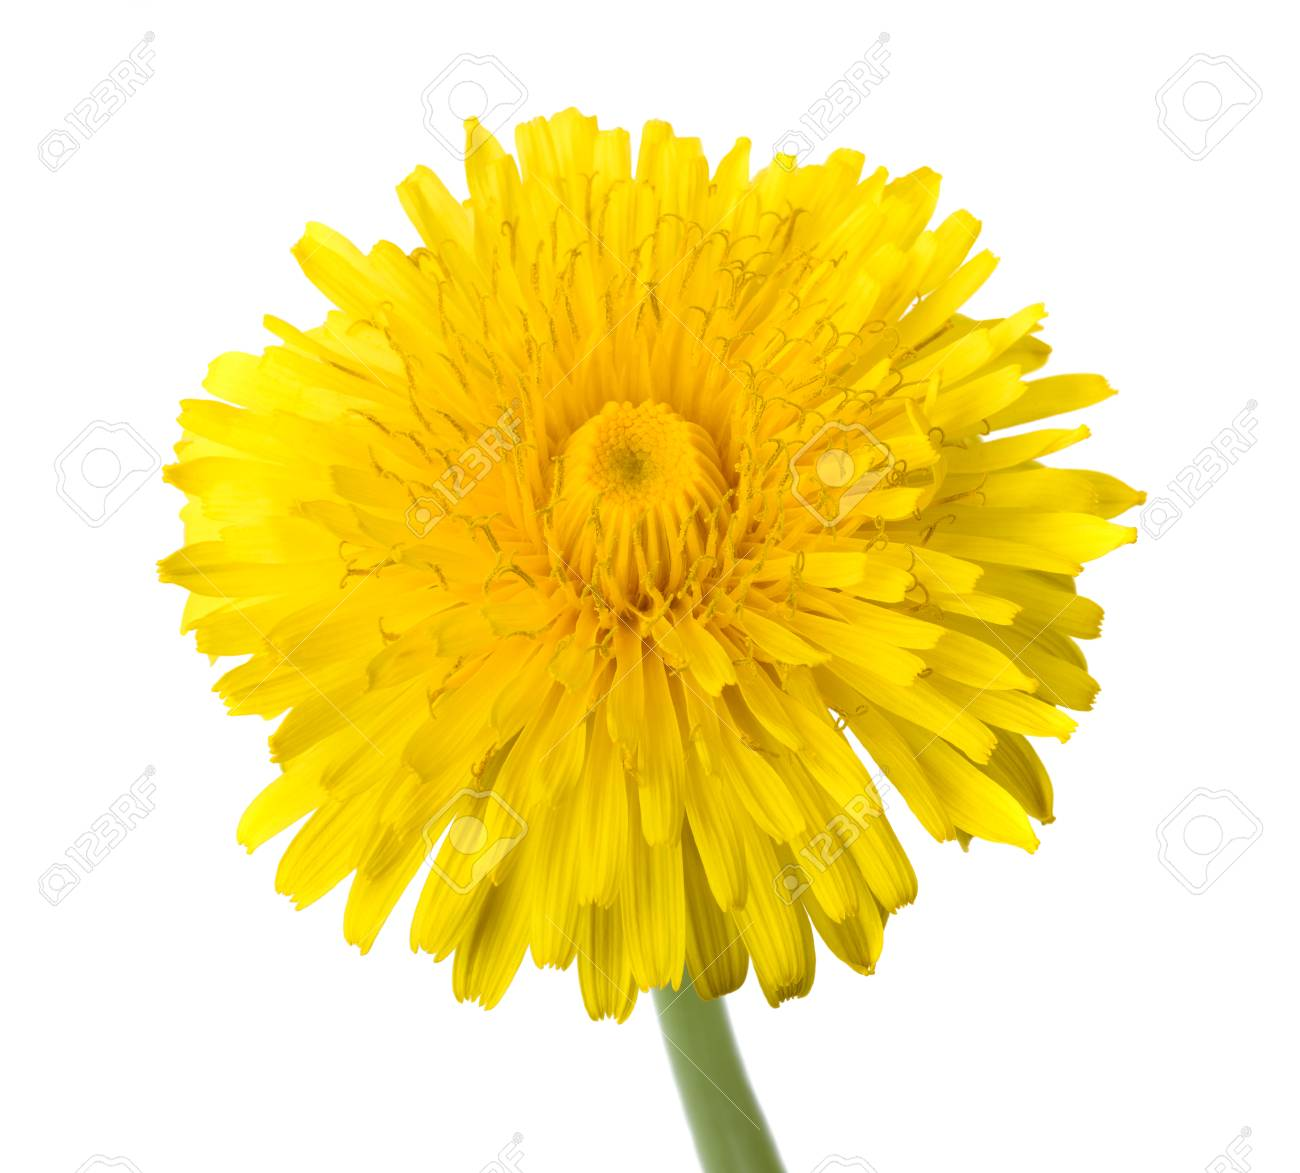 Dandelion flower isolated on white background stock photo picture dandelion flower isolated on white background stock photo 92859796 mightylinksfo